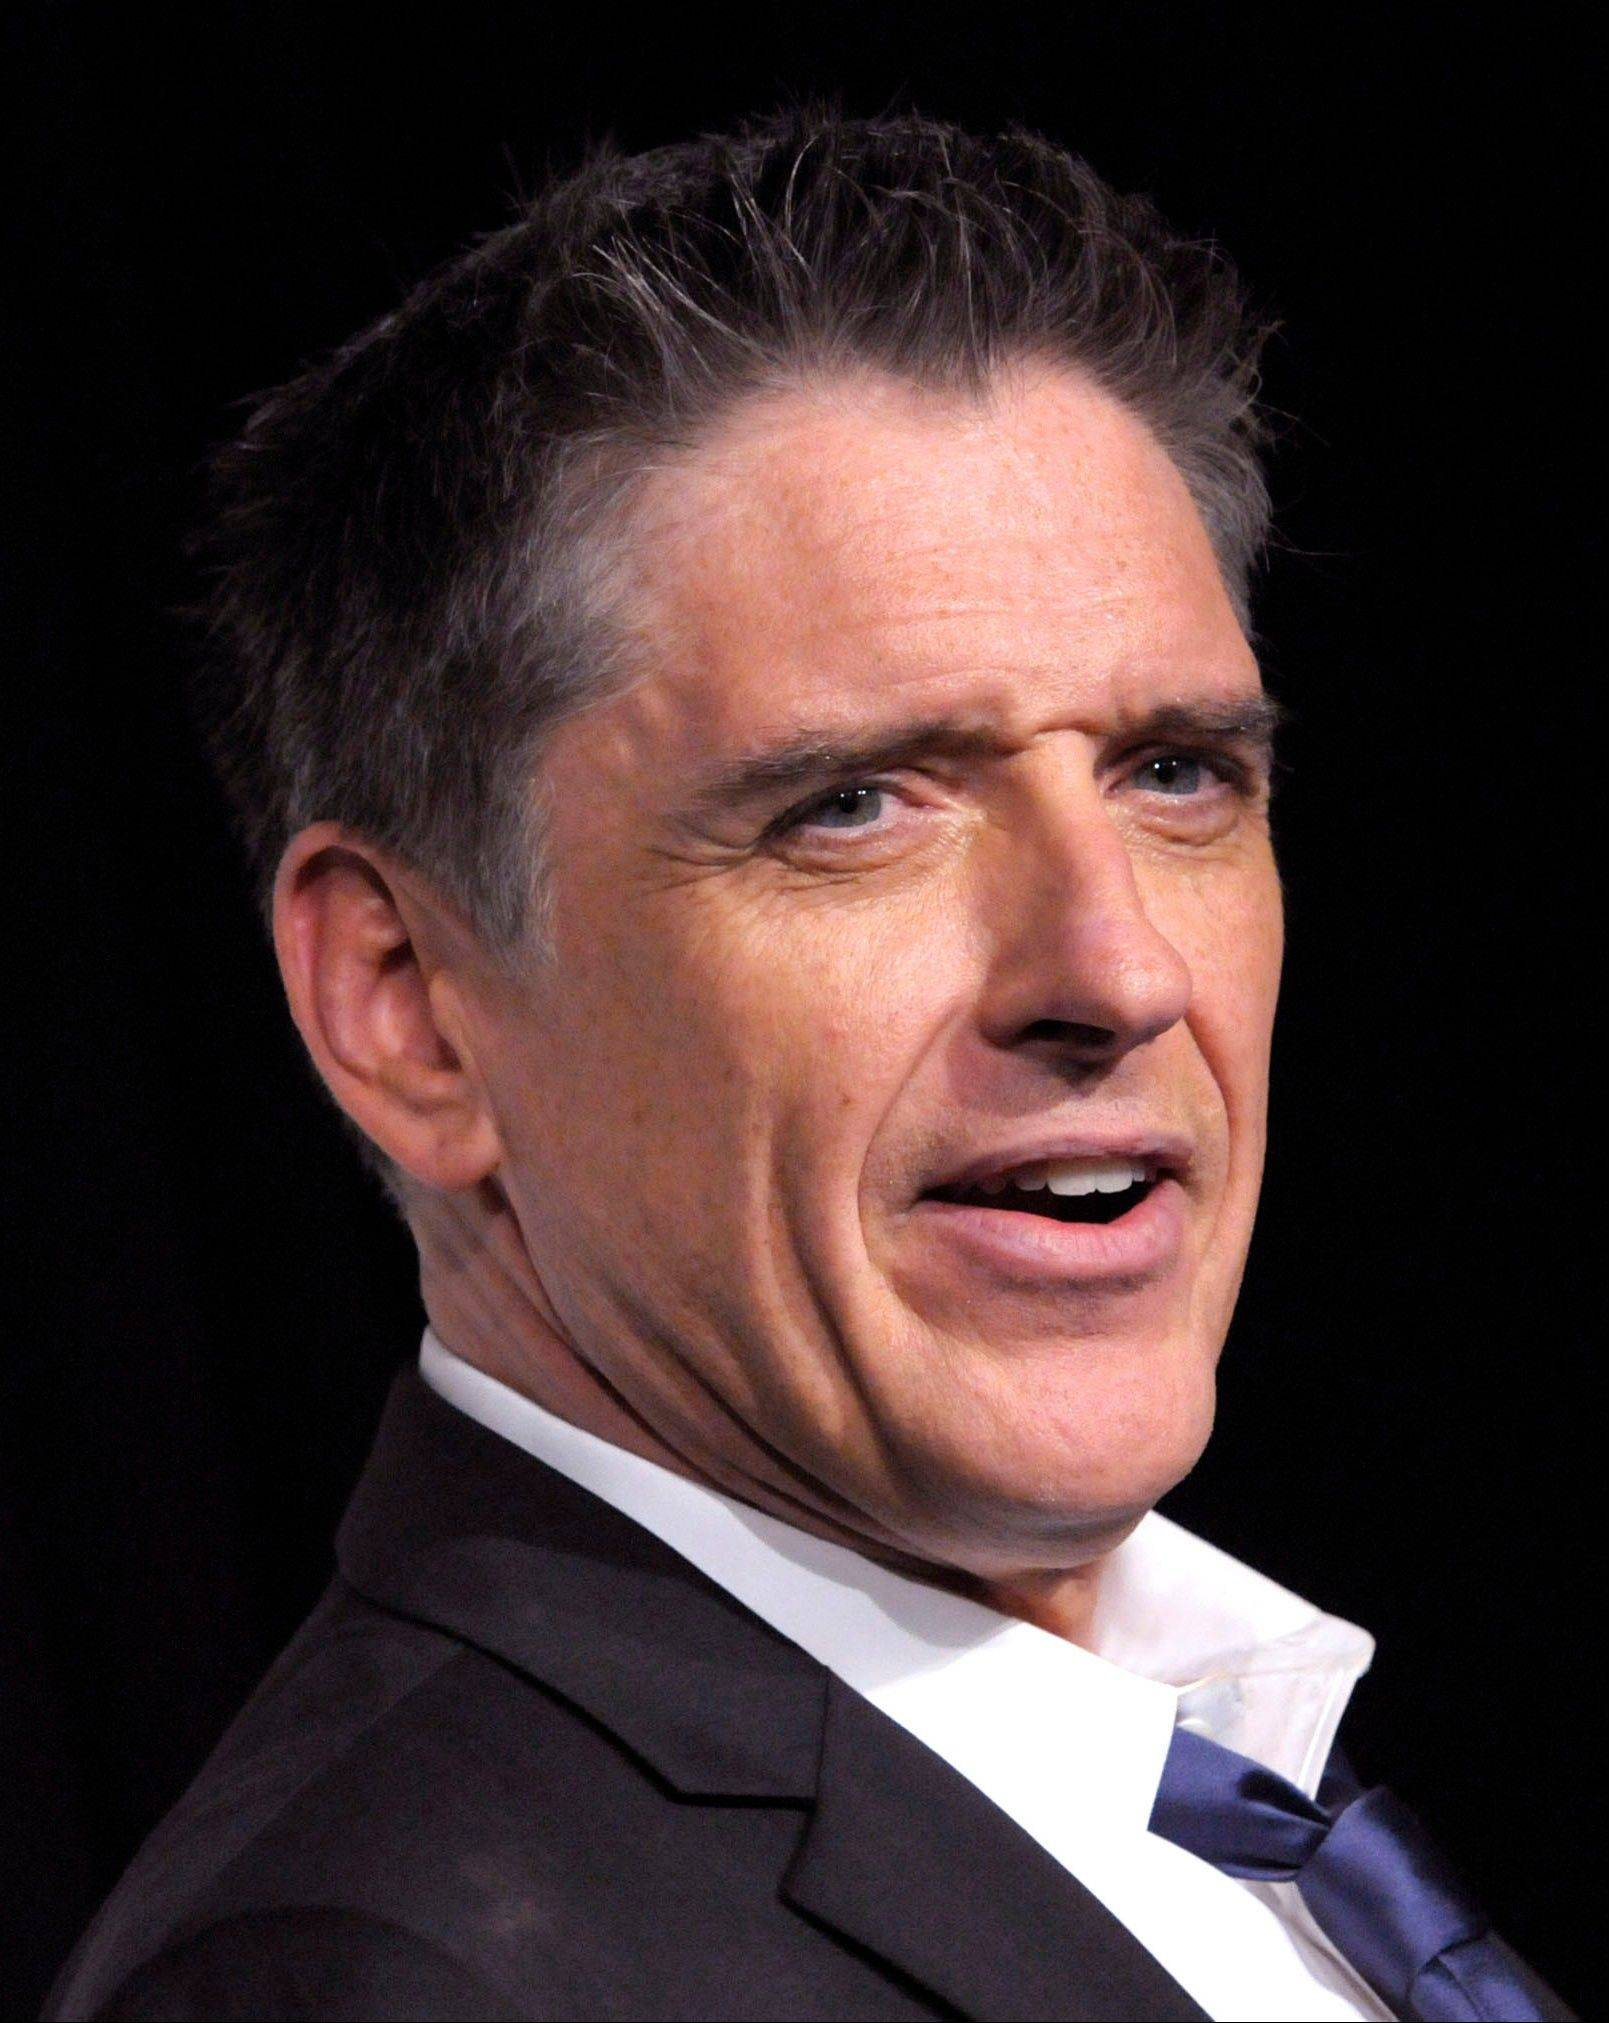 Craig Ferguson received an envelope Tuesday that was packed with white powder that turned out to be harmless.